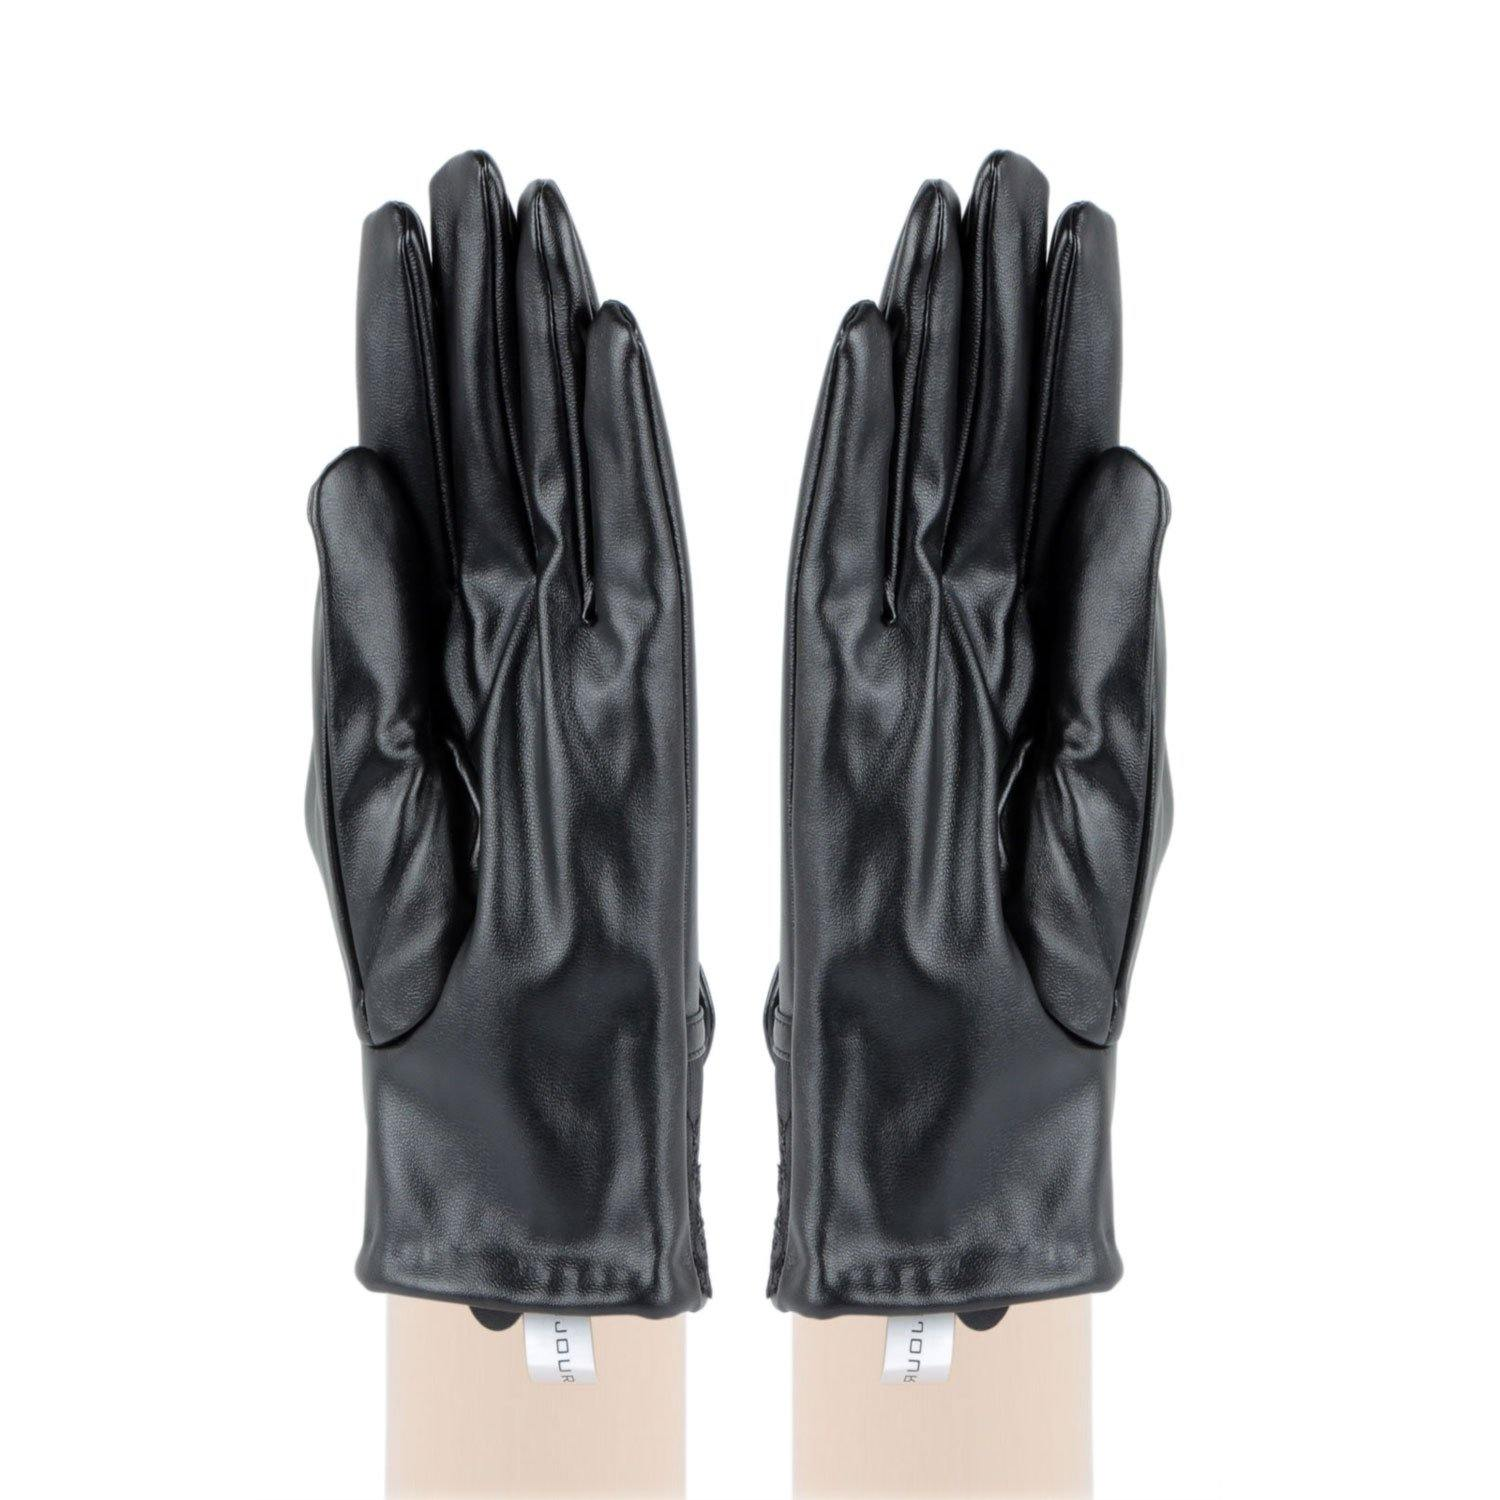 Women's Leather Plain Gloves For Winters With Bow on Palm